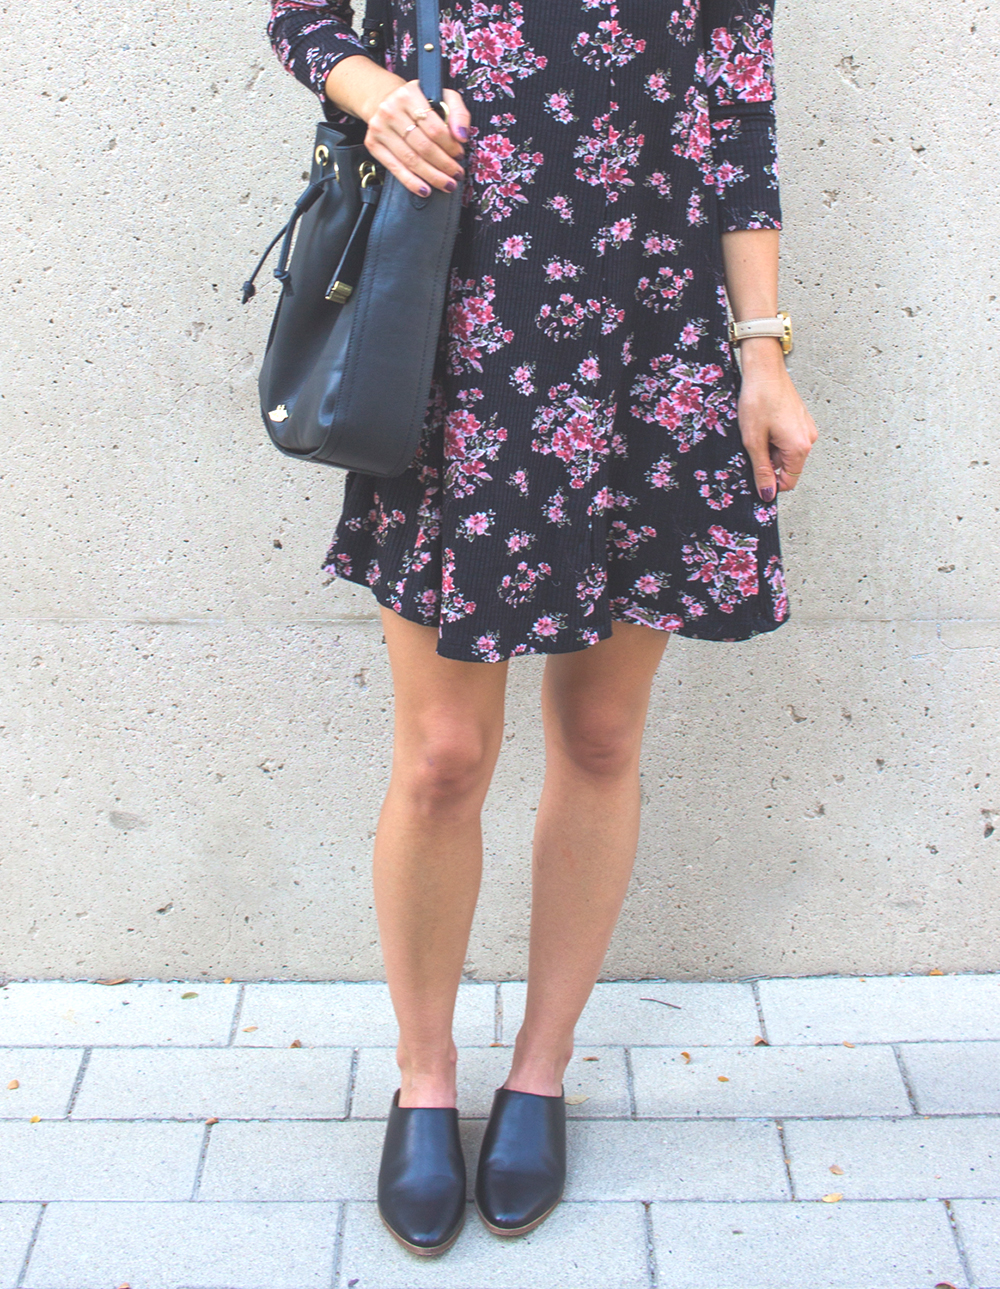 livvyland-blog-olivia-watson-lush-floral-black-shift-dress-brahmin-bucket-bag-ray-ban-wayfarer-sunglasses-madewell-slip-on-mules-6